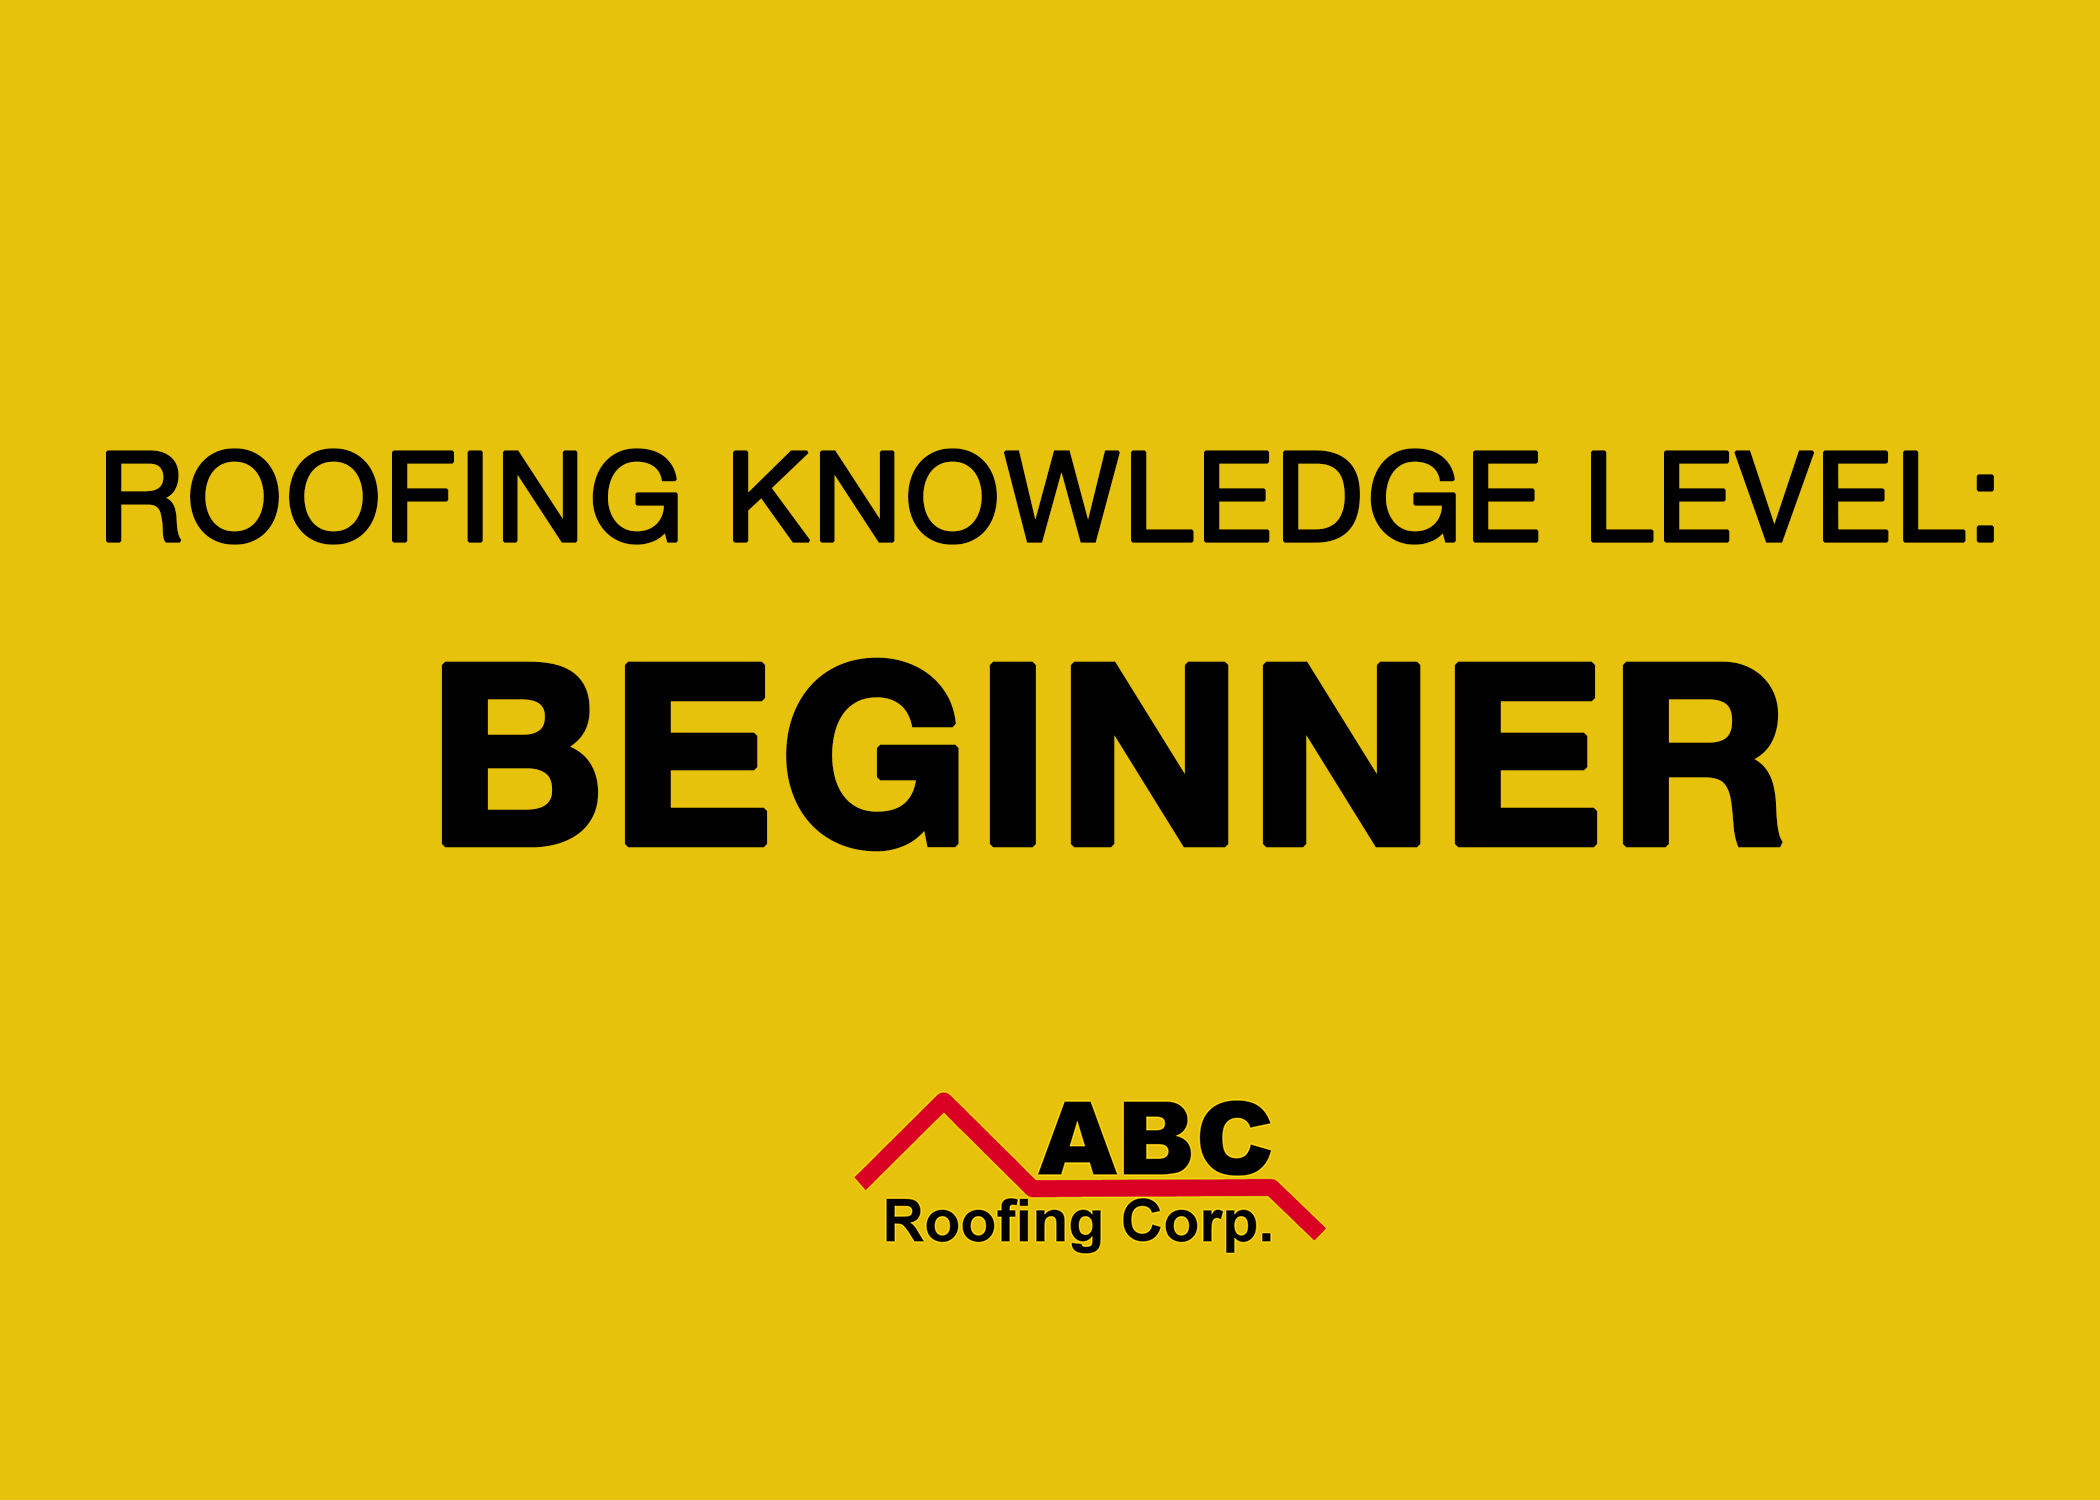 Roofing Knowledge Level- Beginner